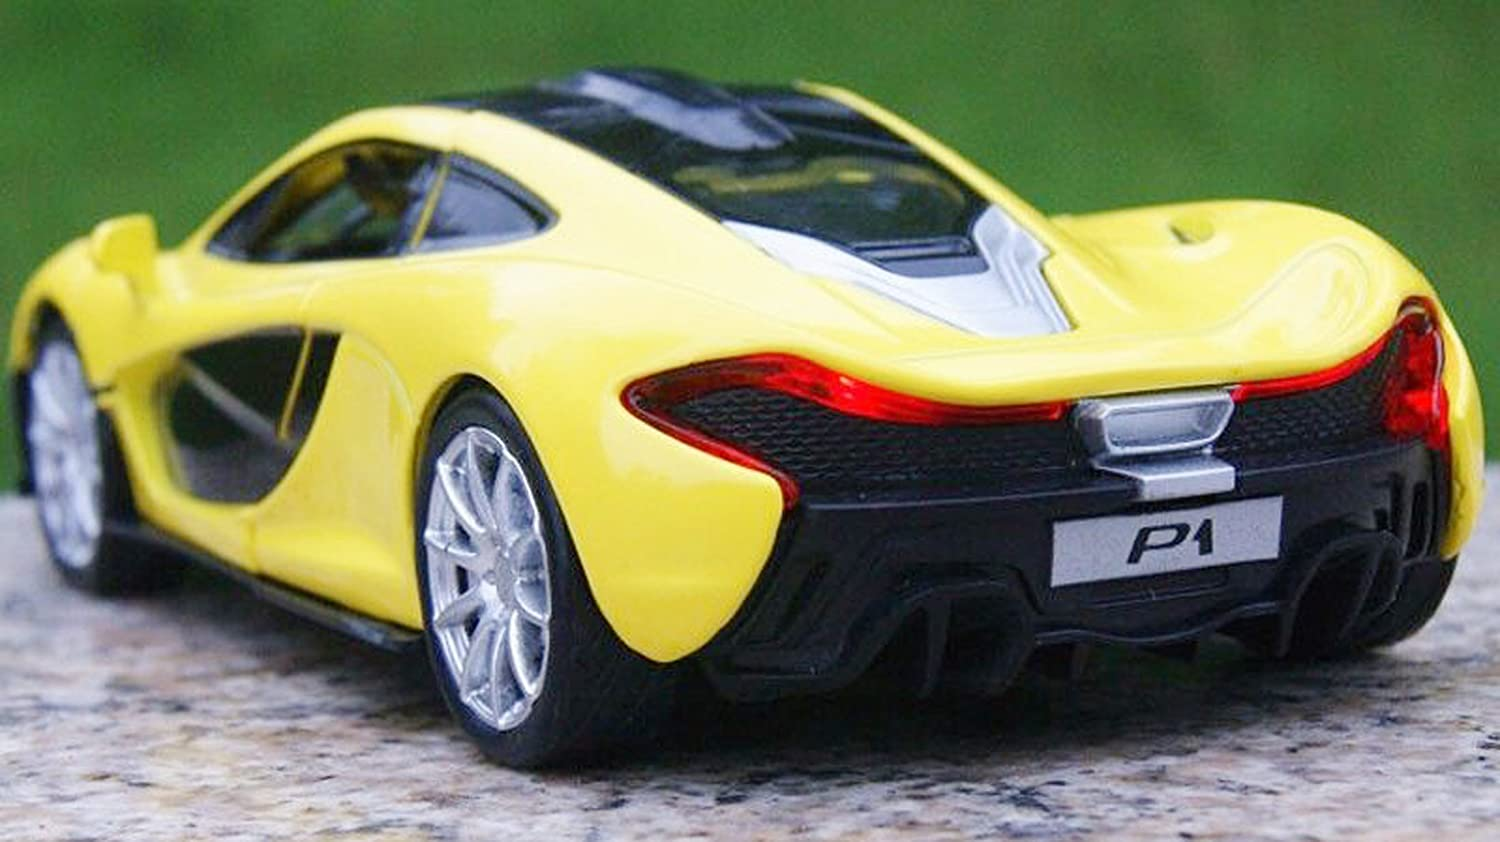 Amazon.com: NuoYa001 New 1:32 McLaren P1 Alloy Diecast Car Model Collection  With Light U0026 Sound Yellow By NuoYa: Toys U0026 Games